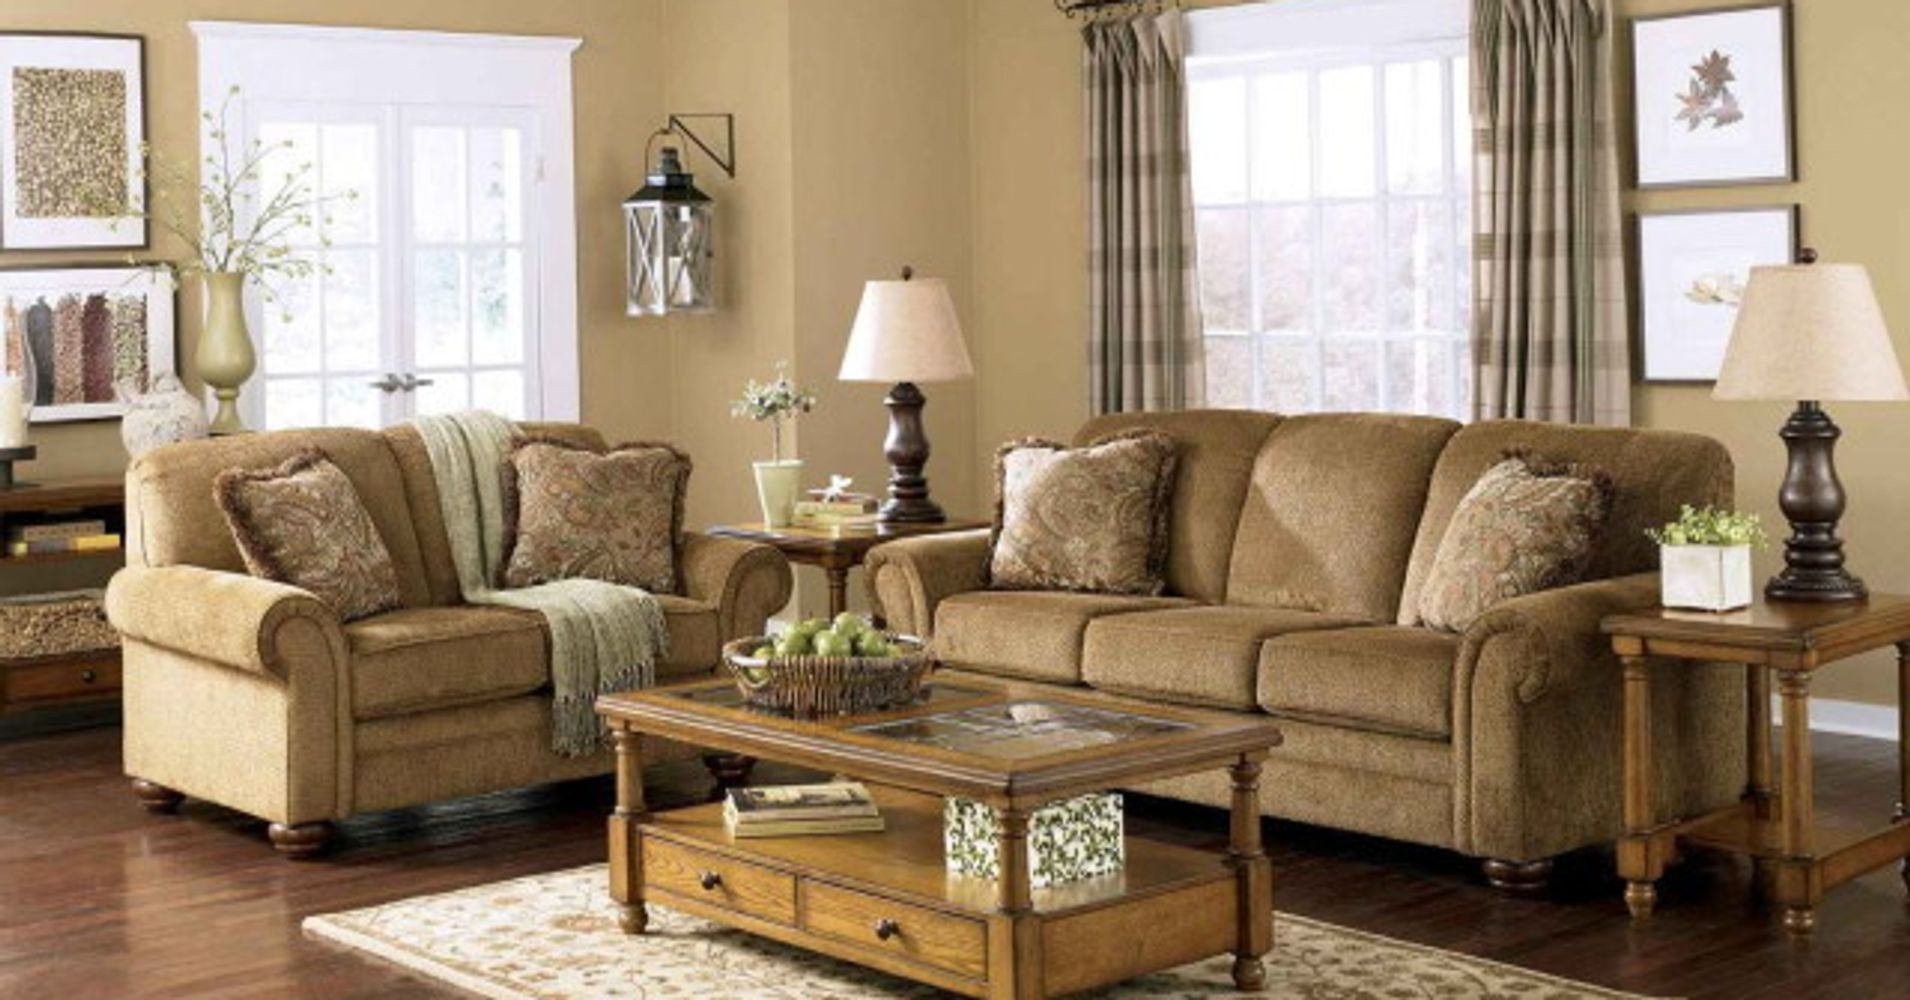 Smart tips to reap the benefits of online furniture shopping